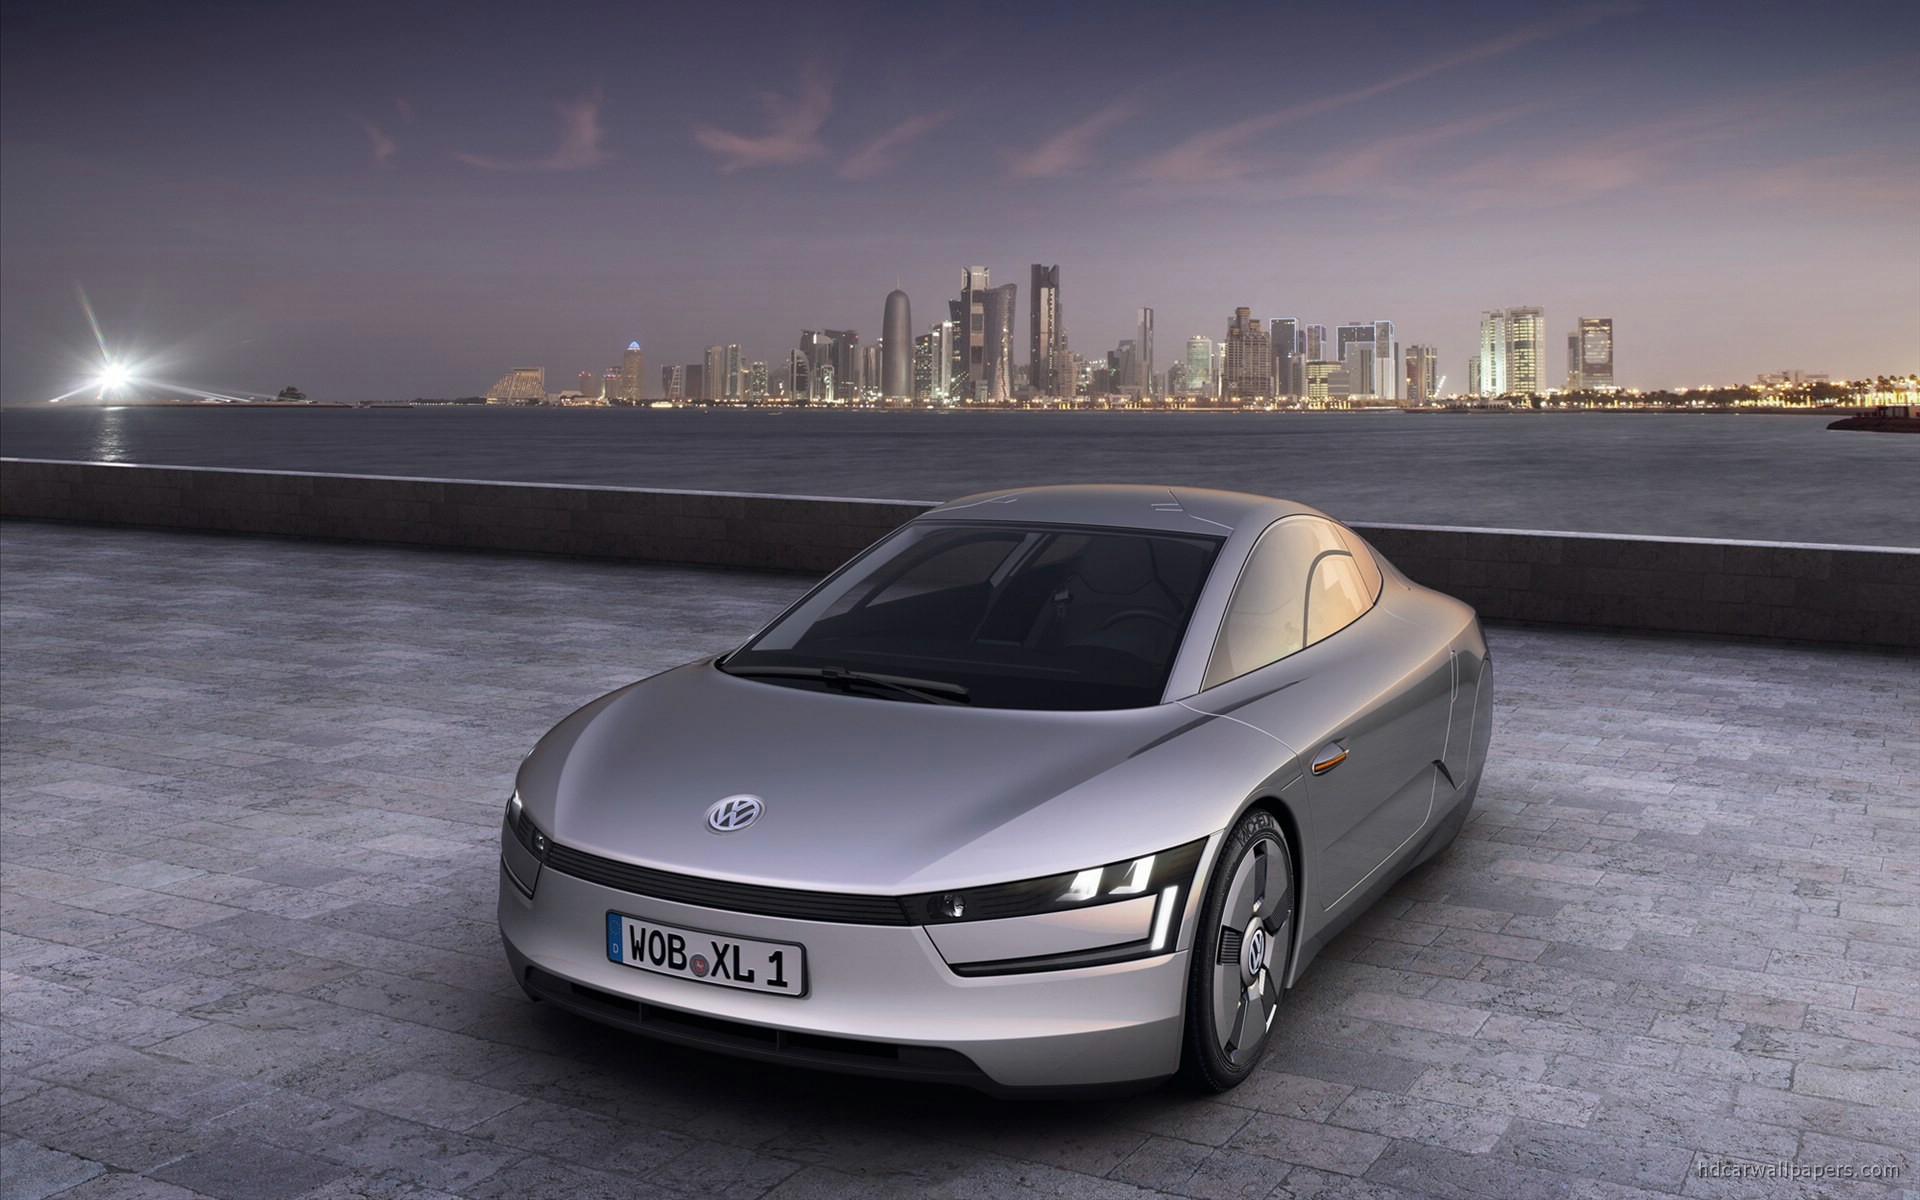 2011 Volkswagen XL1 Concept 3 Wallpaper | HD Car Wallpapers